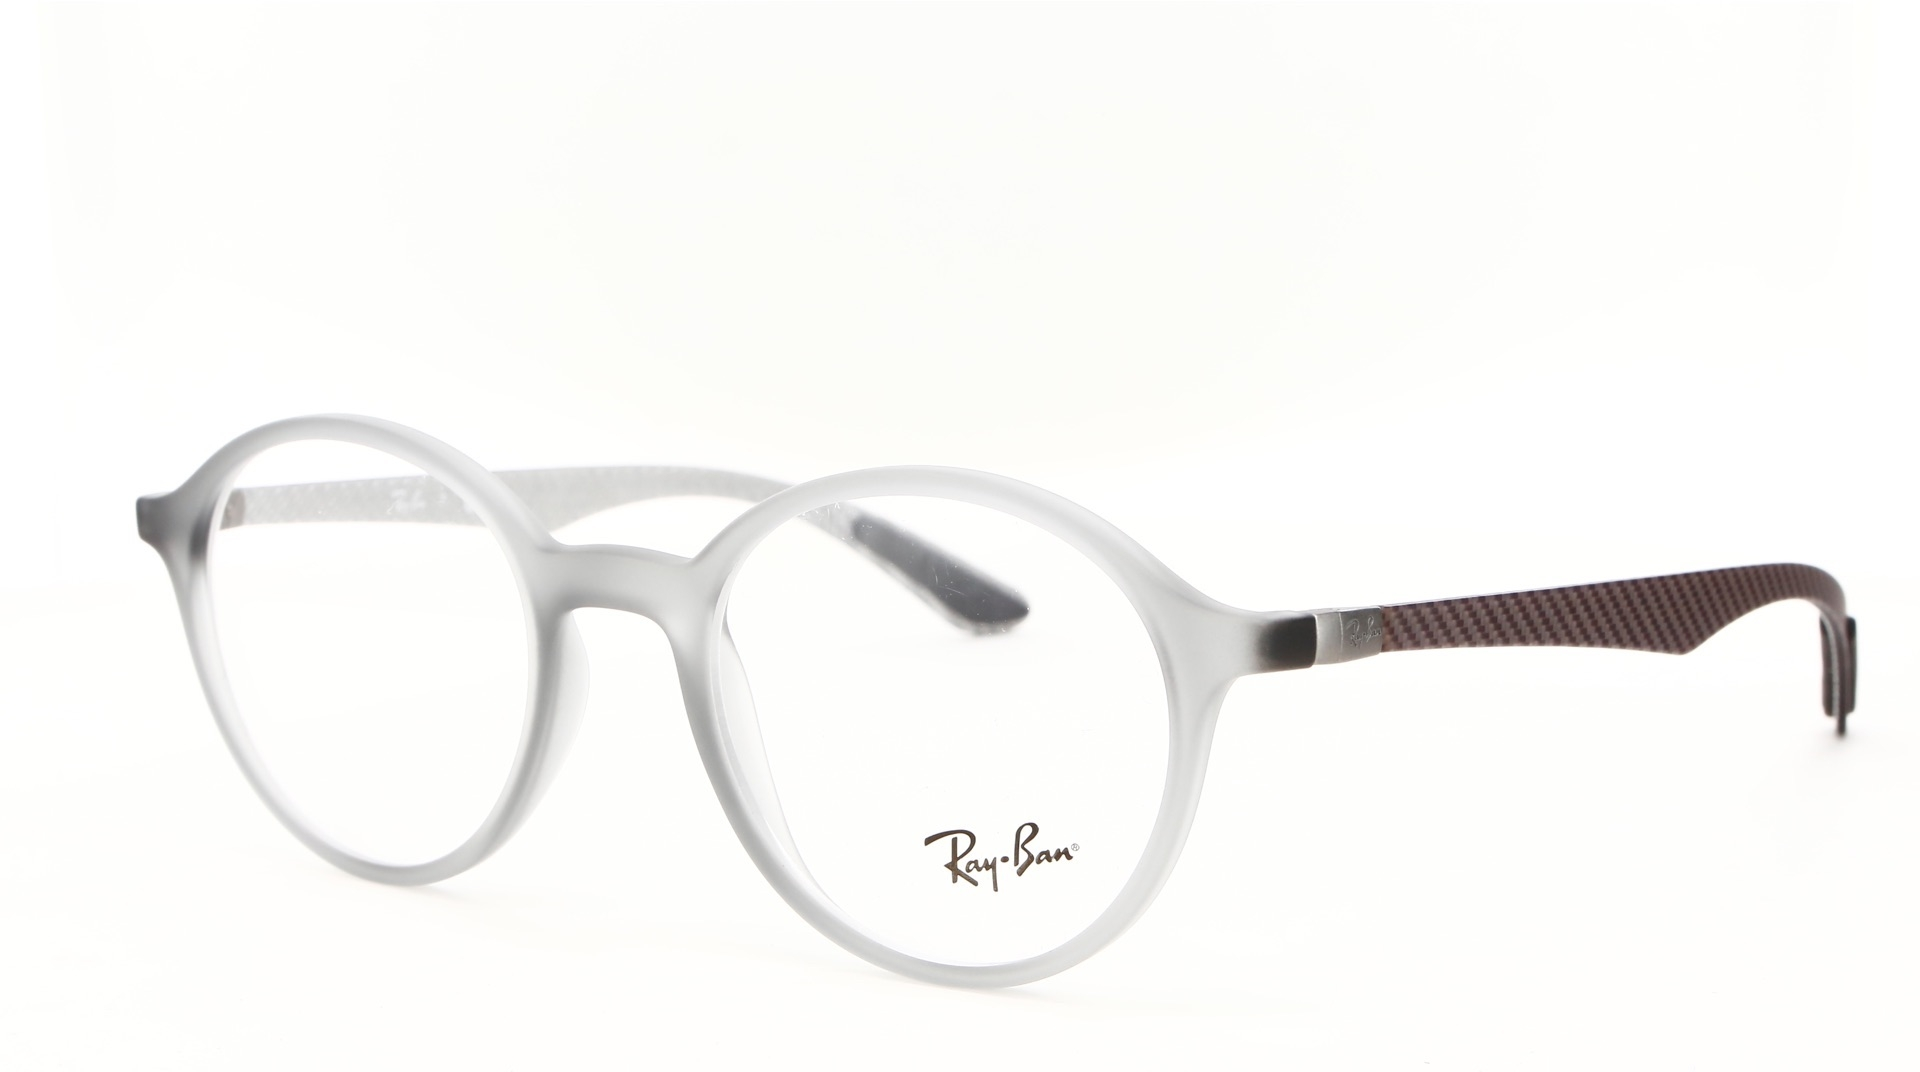 Ray-Ban - ref: 78772